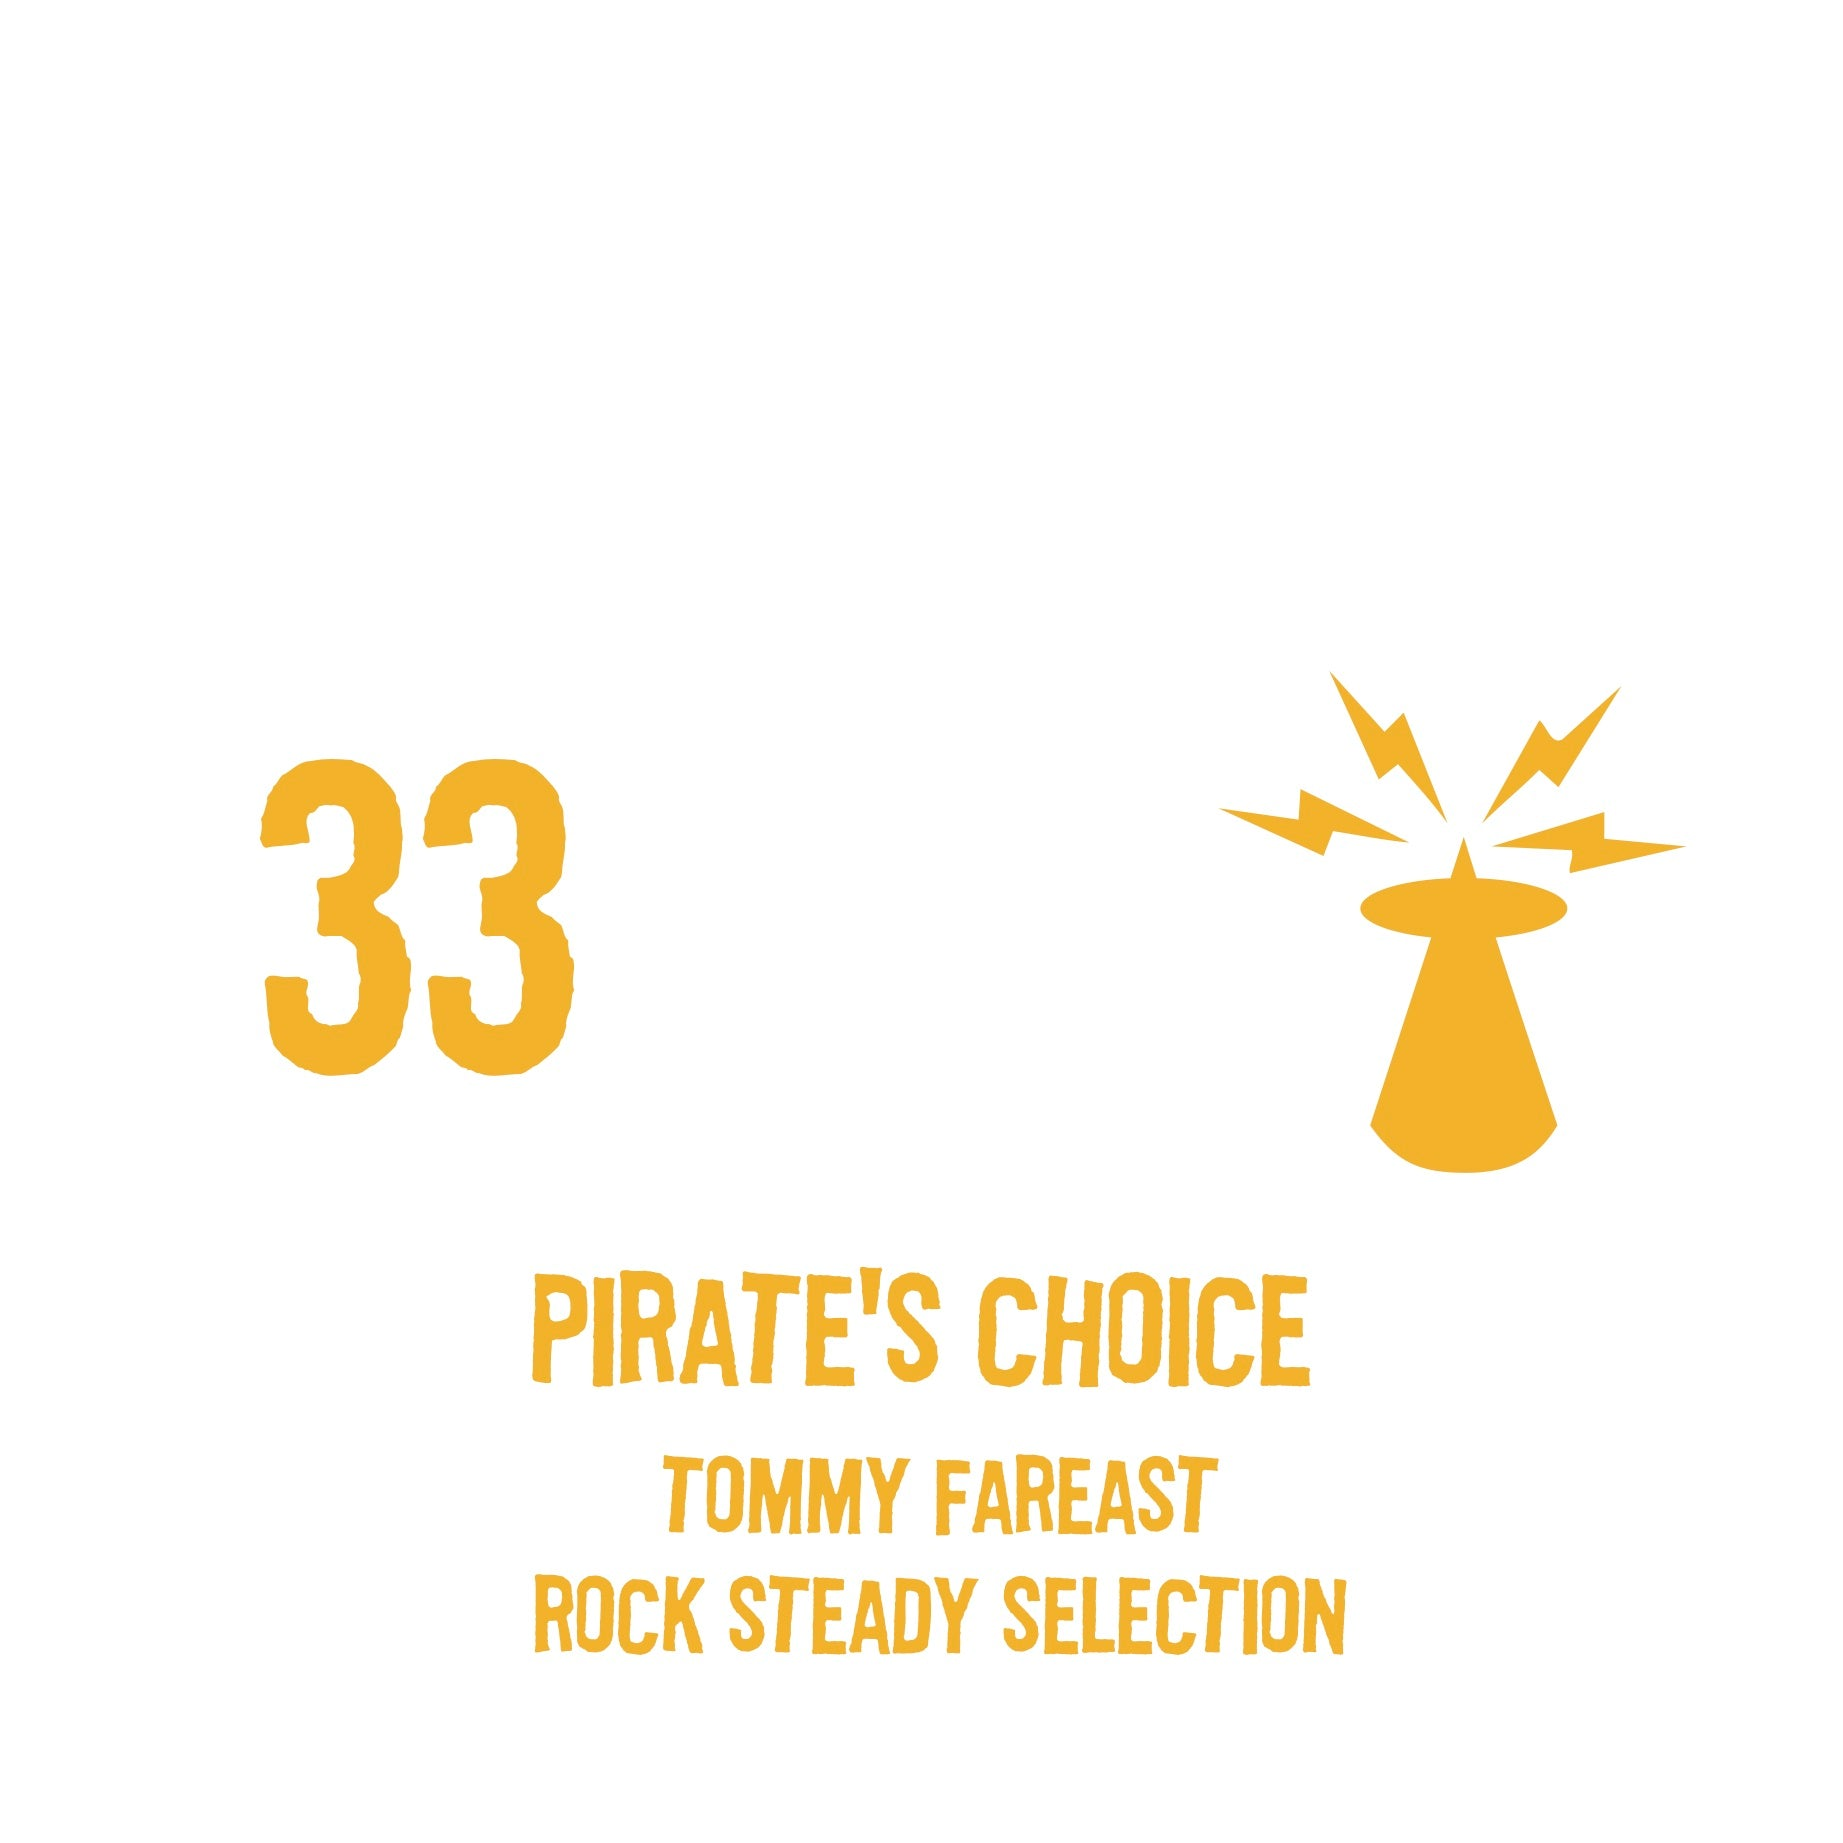 PIRATES CHOICE [Pt33 Tommy Fareast Rock Steady Selection]